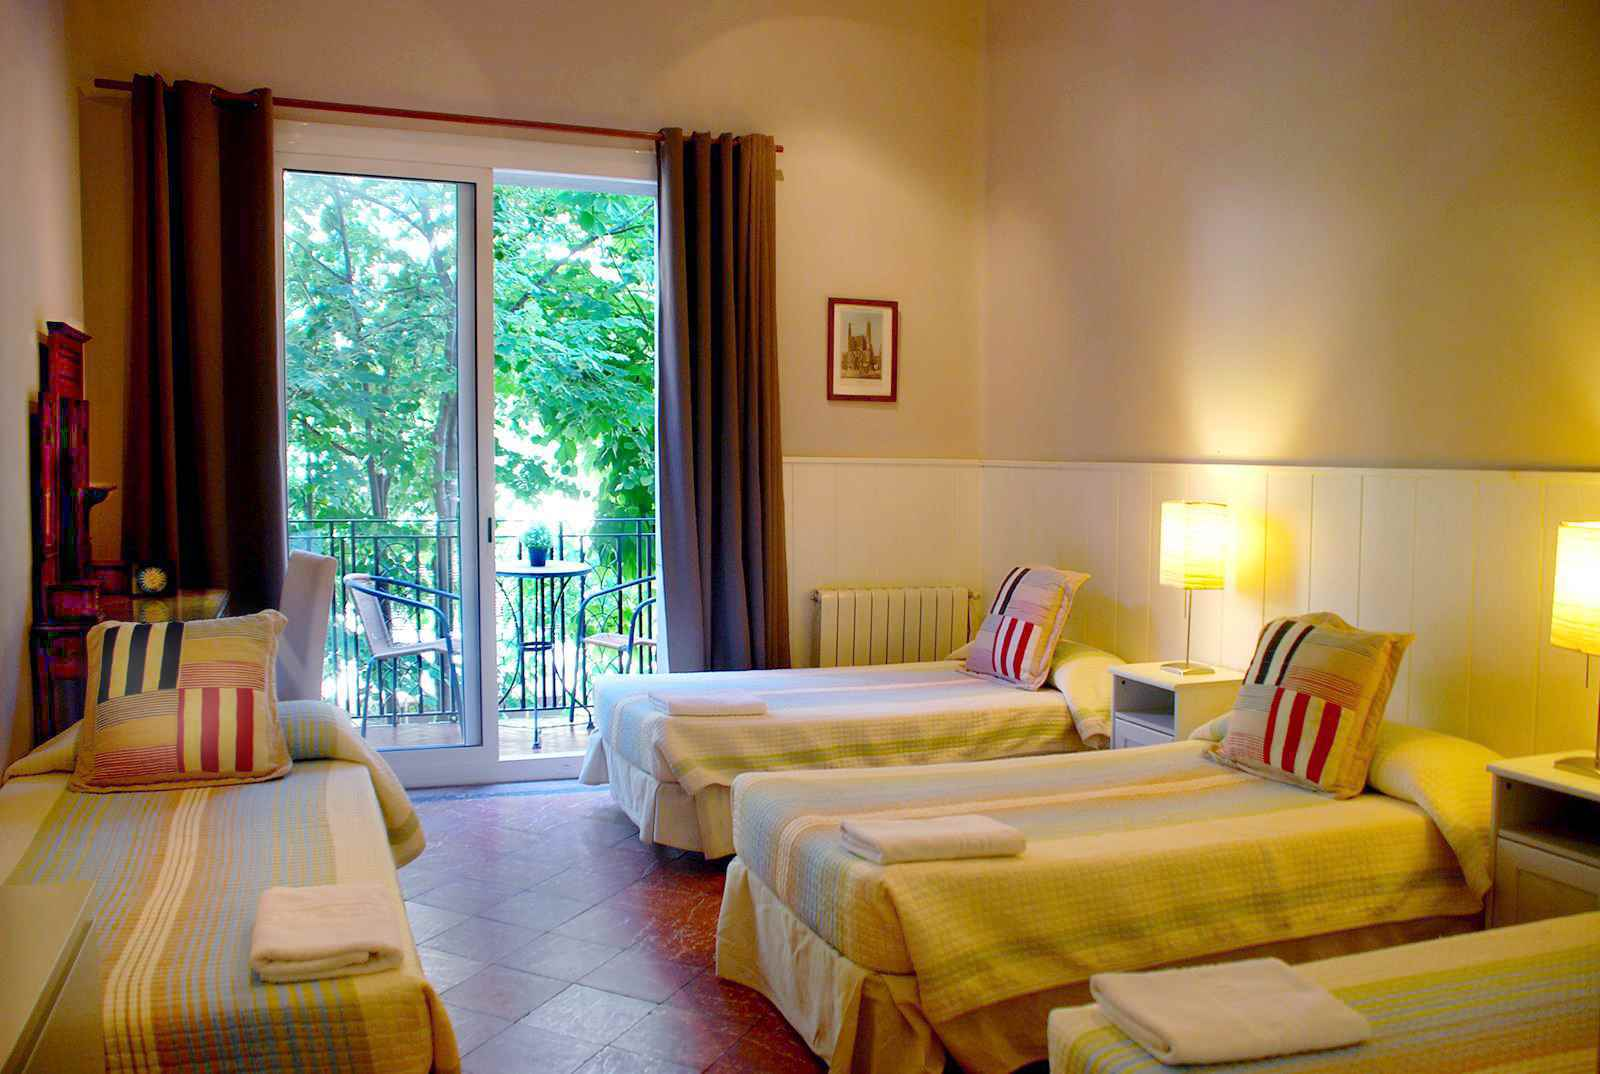 Barcelona City Centre Bed & Breakfast Barcelona City Centre Bed & Breakfast